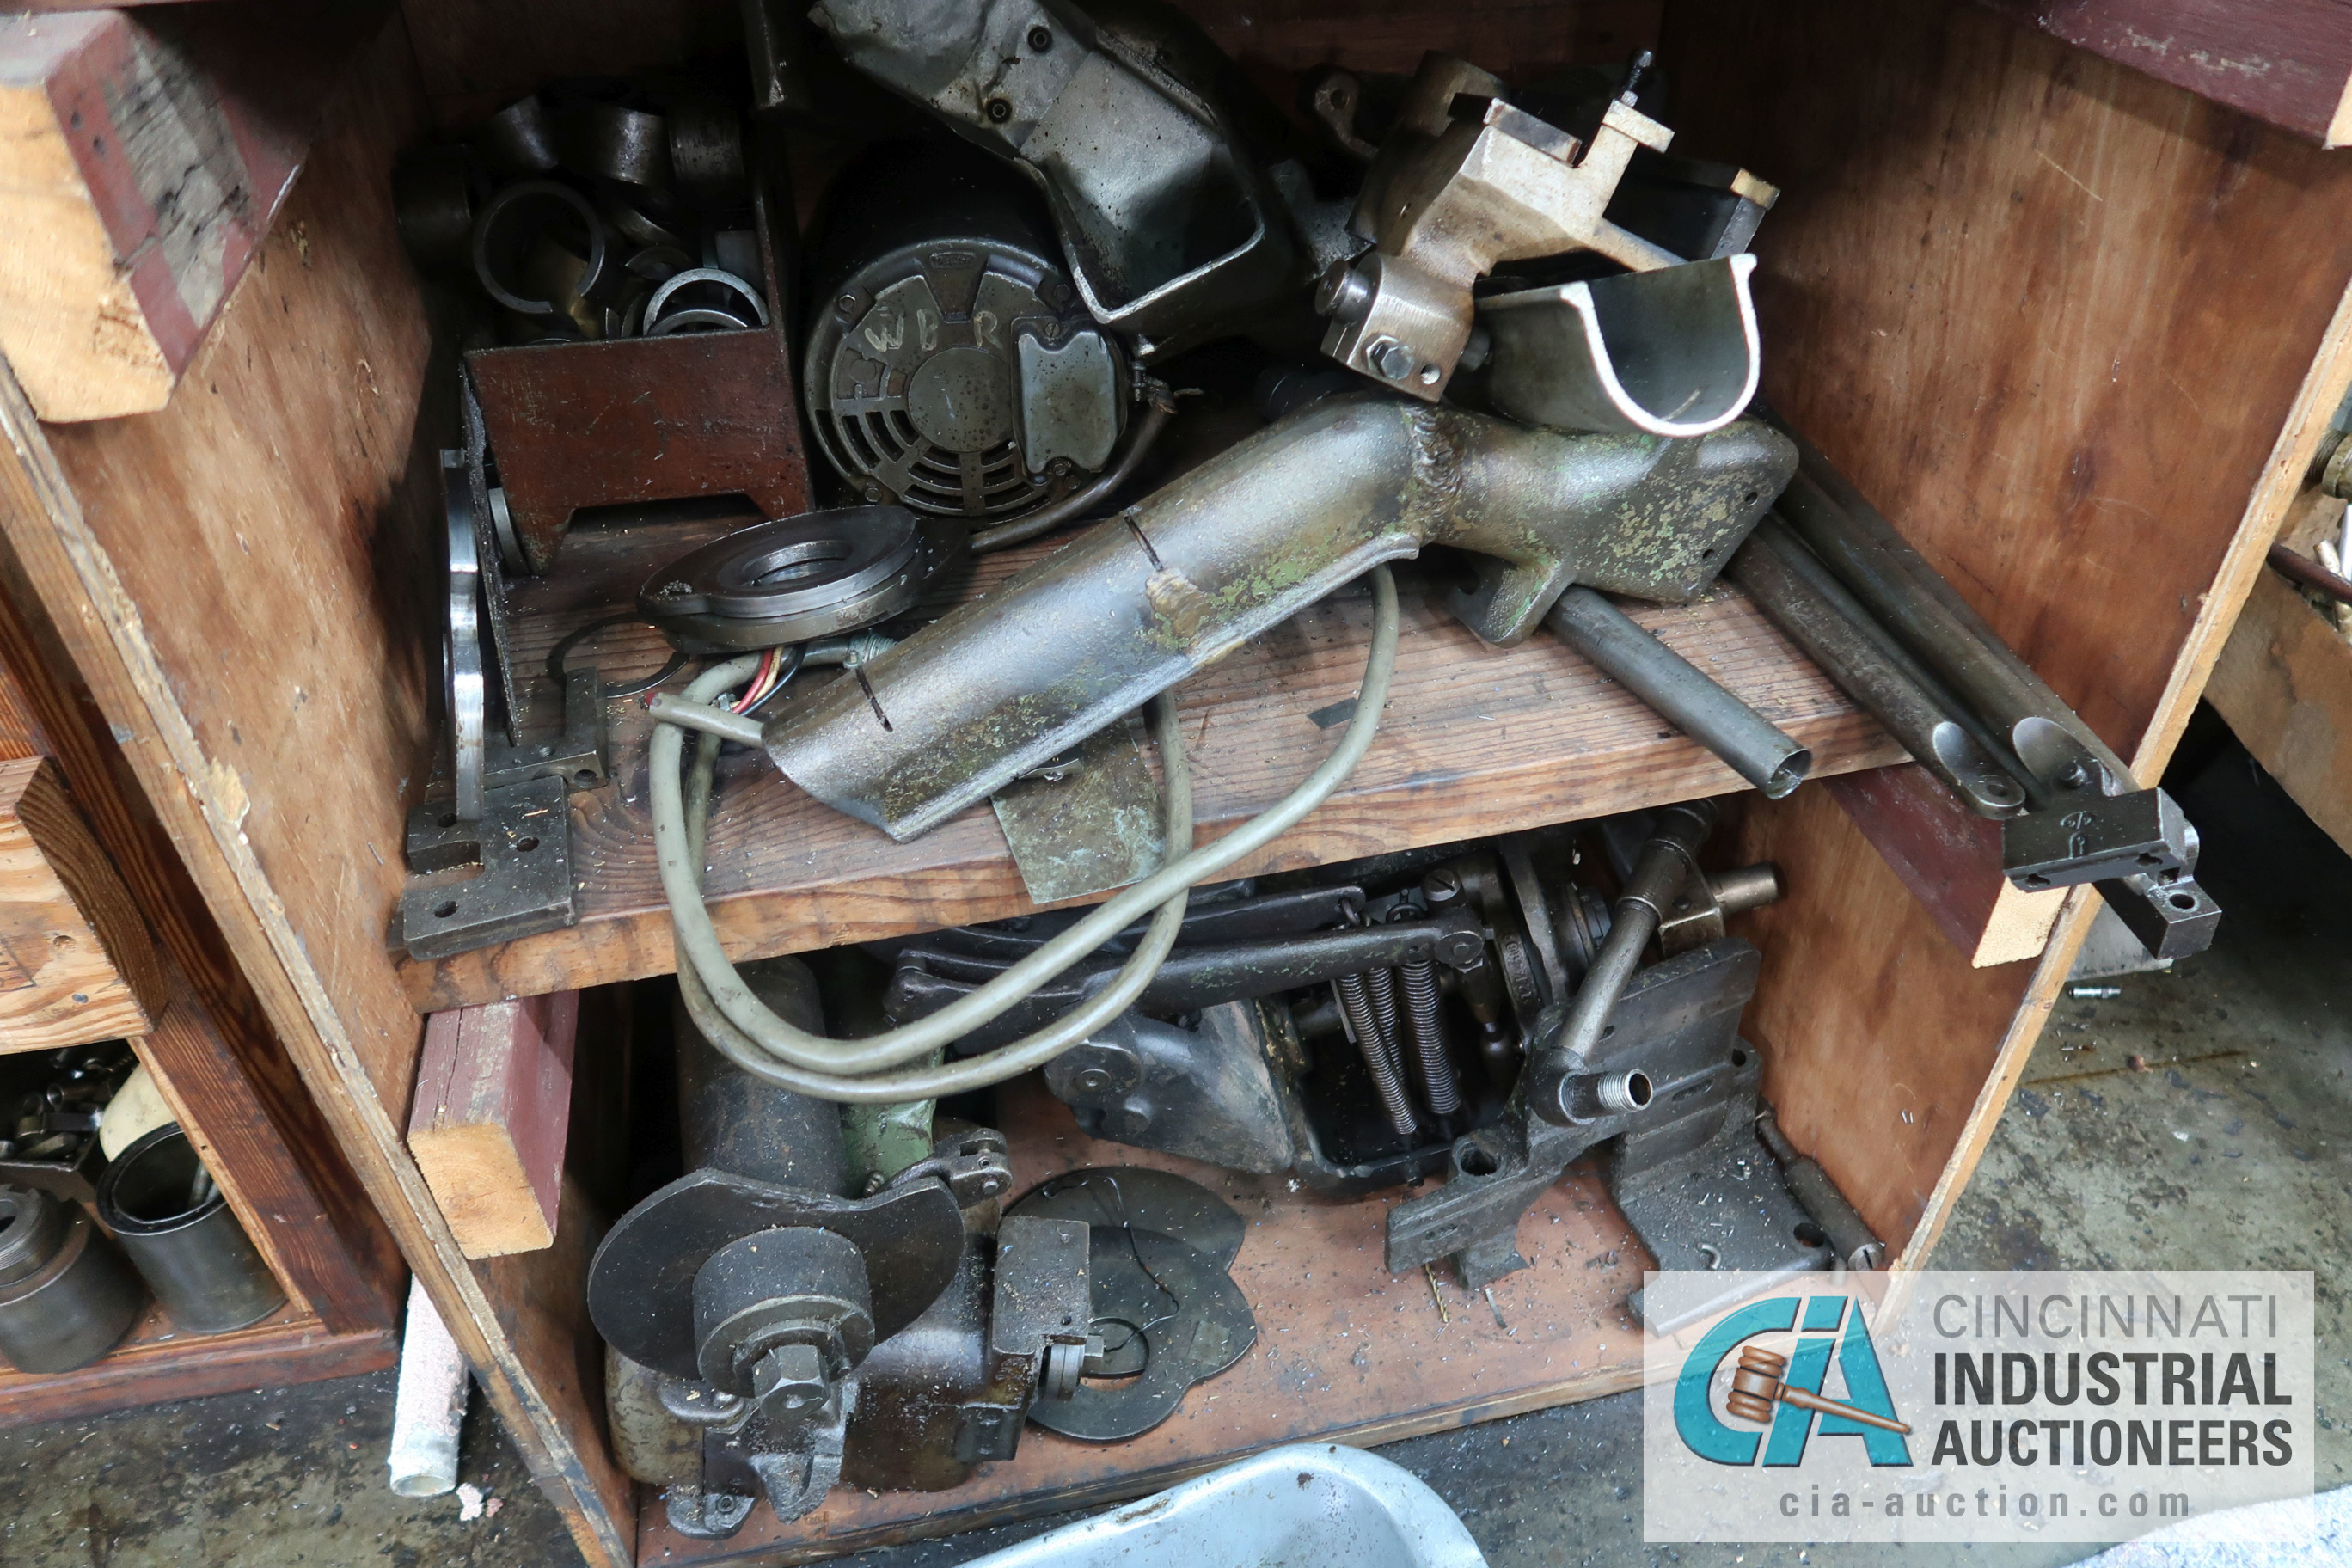 (LOT) LARGE ASSORTMENT MISCELLANEOUS DAVENPORT TOOLING, ATTACHMENTS, GEARS, CAMS AND OTHER RELATED - Image 10 of 21